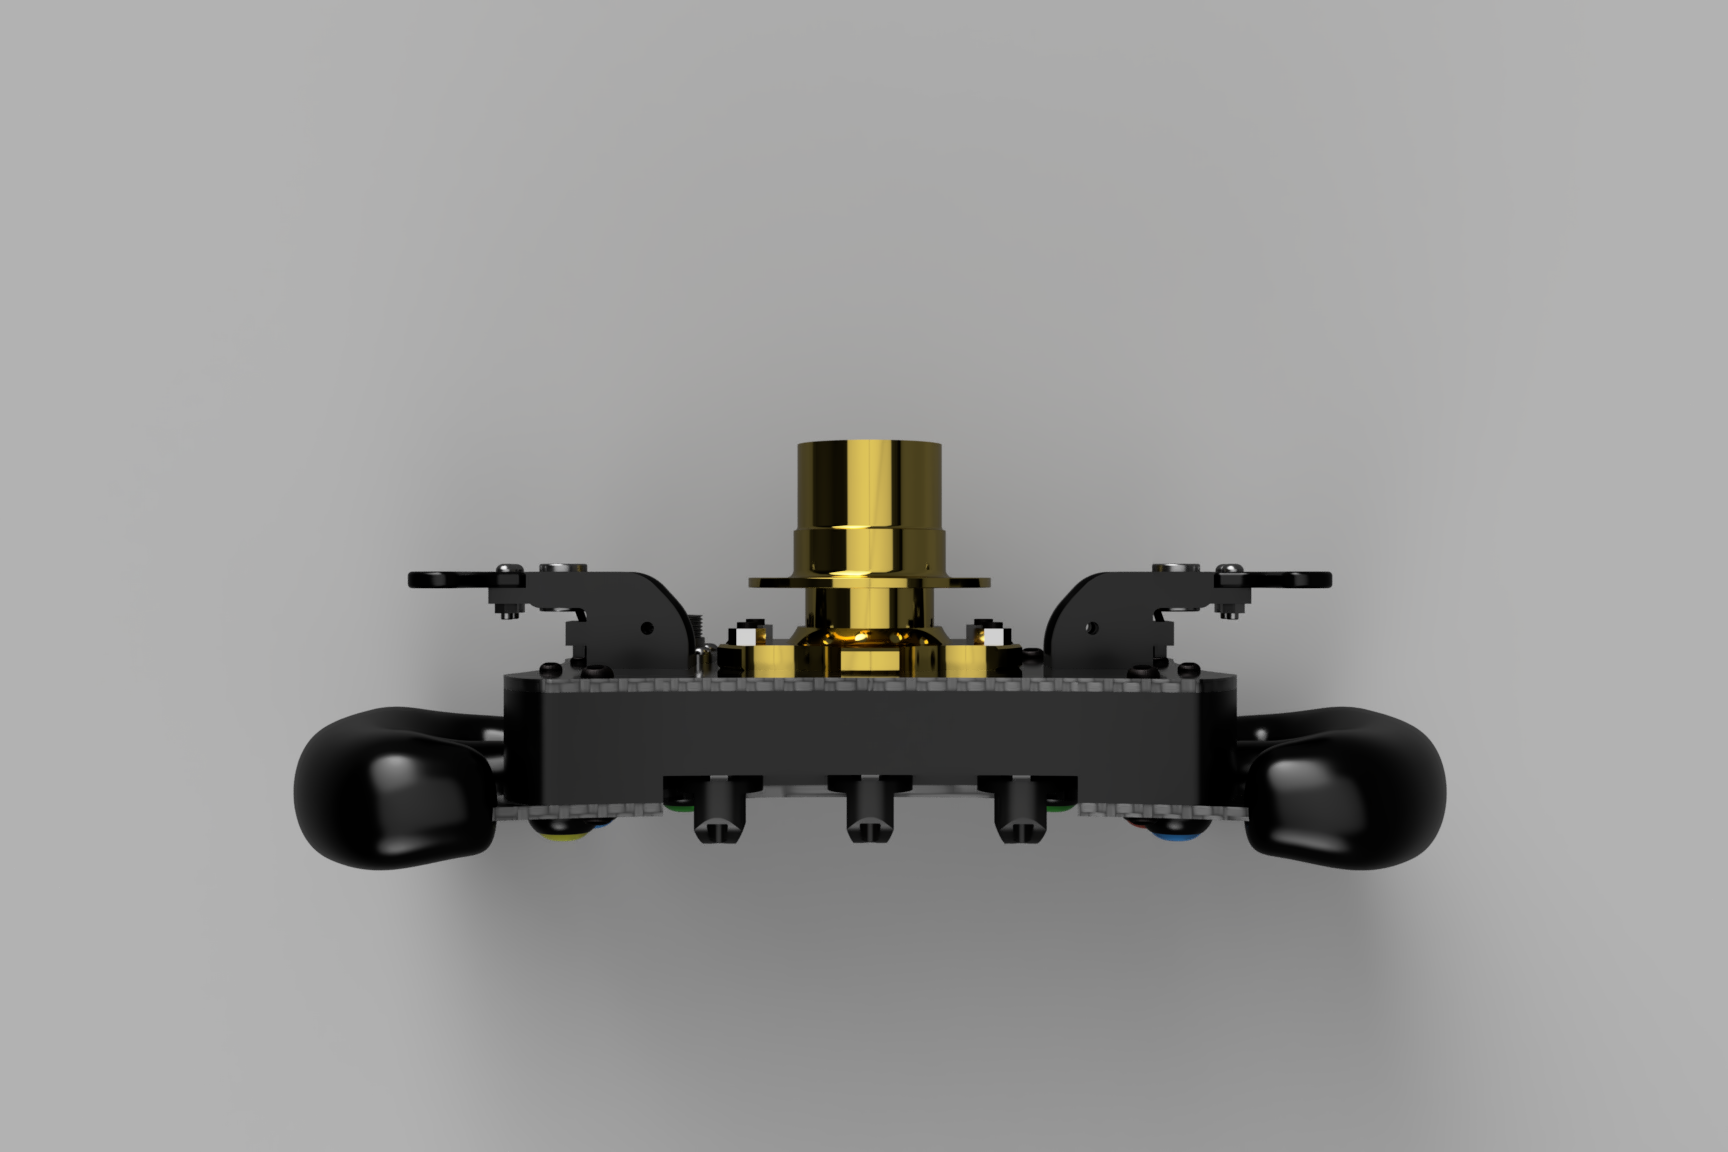 Assembly_2019-Jul-03_02-58-02PM-000_CustomizedView13697450658_png.png